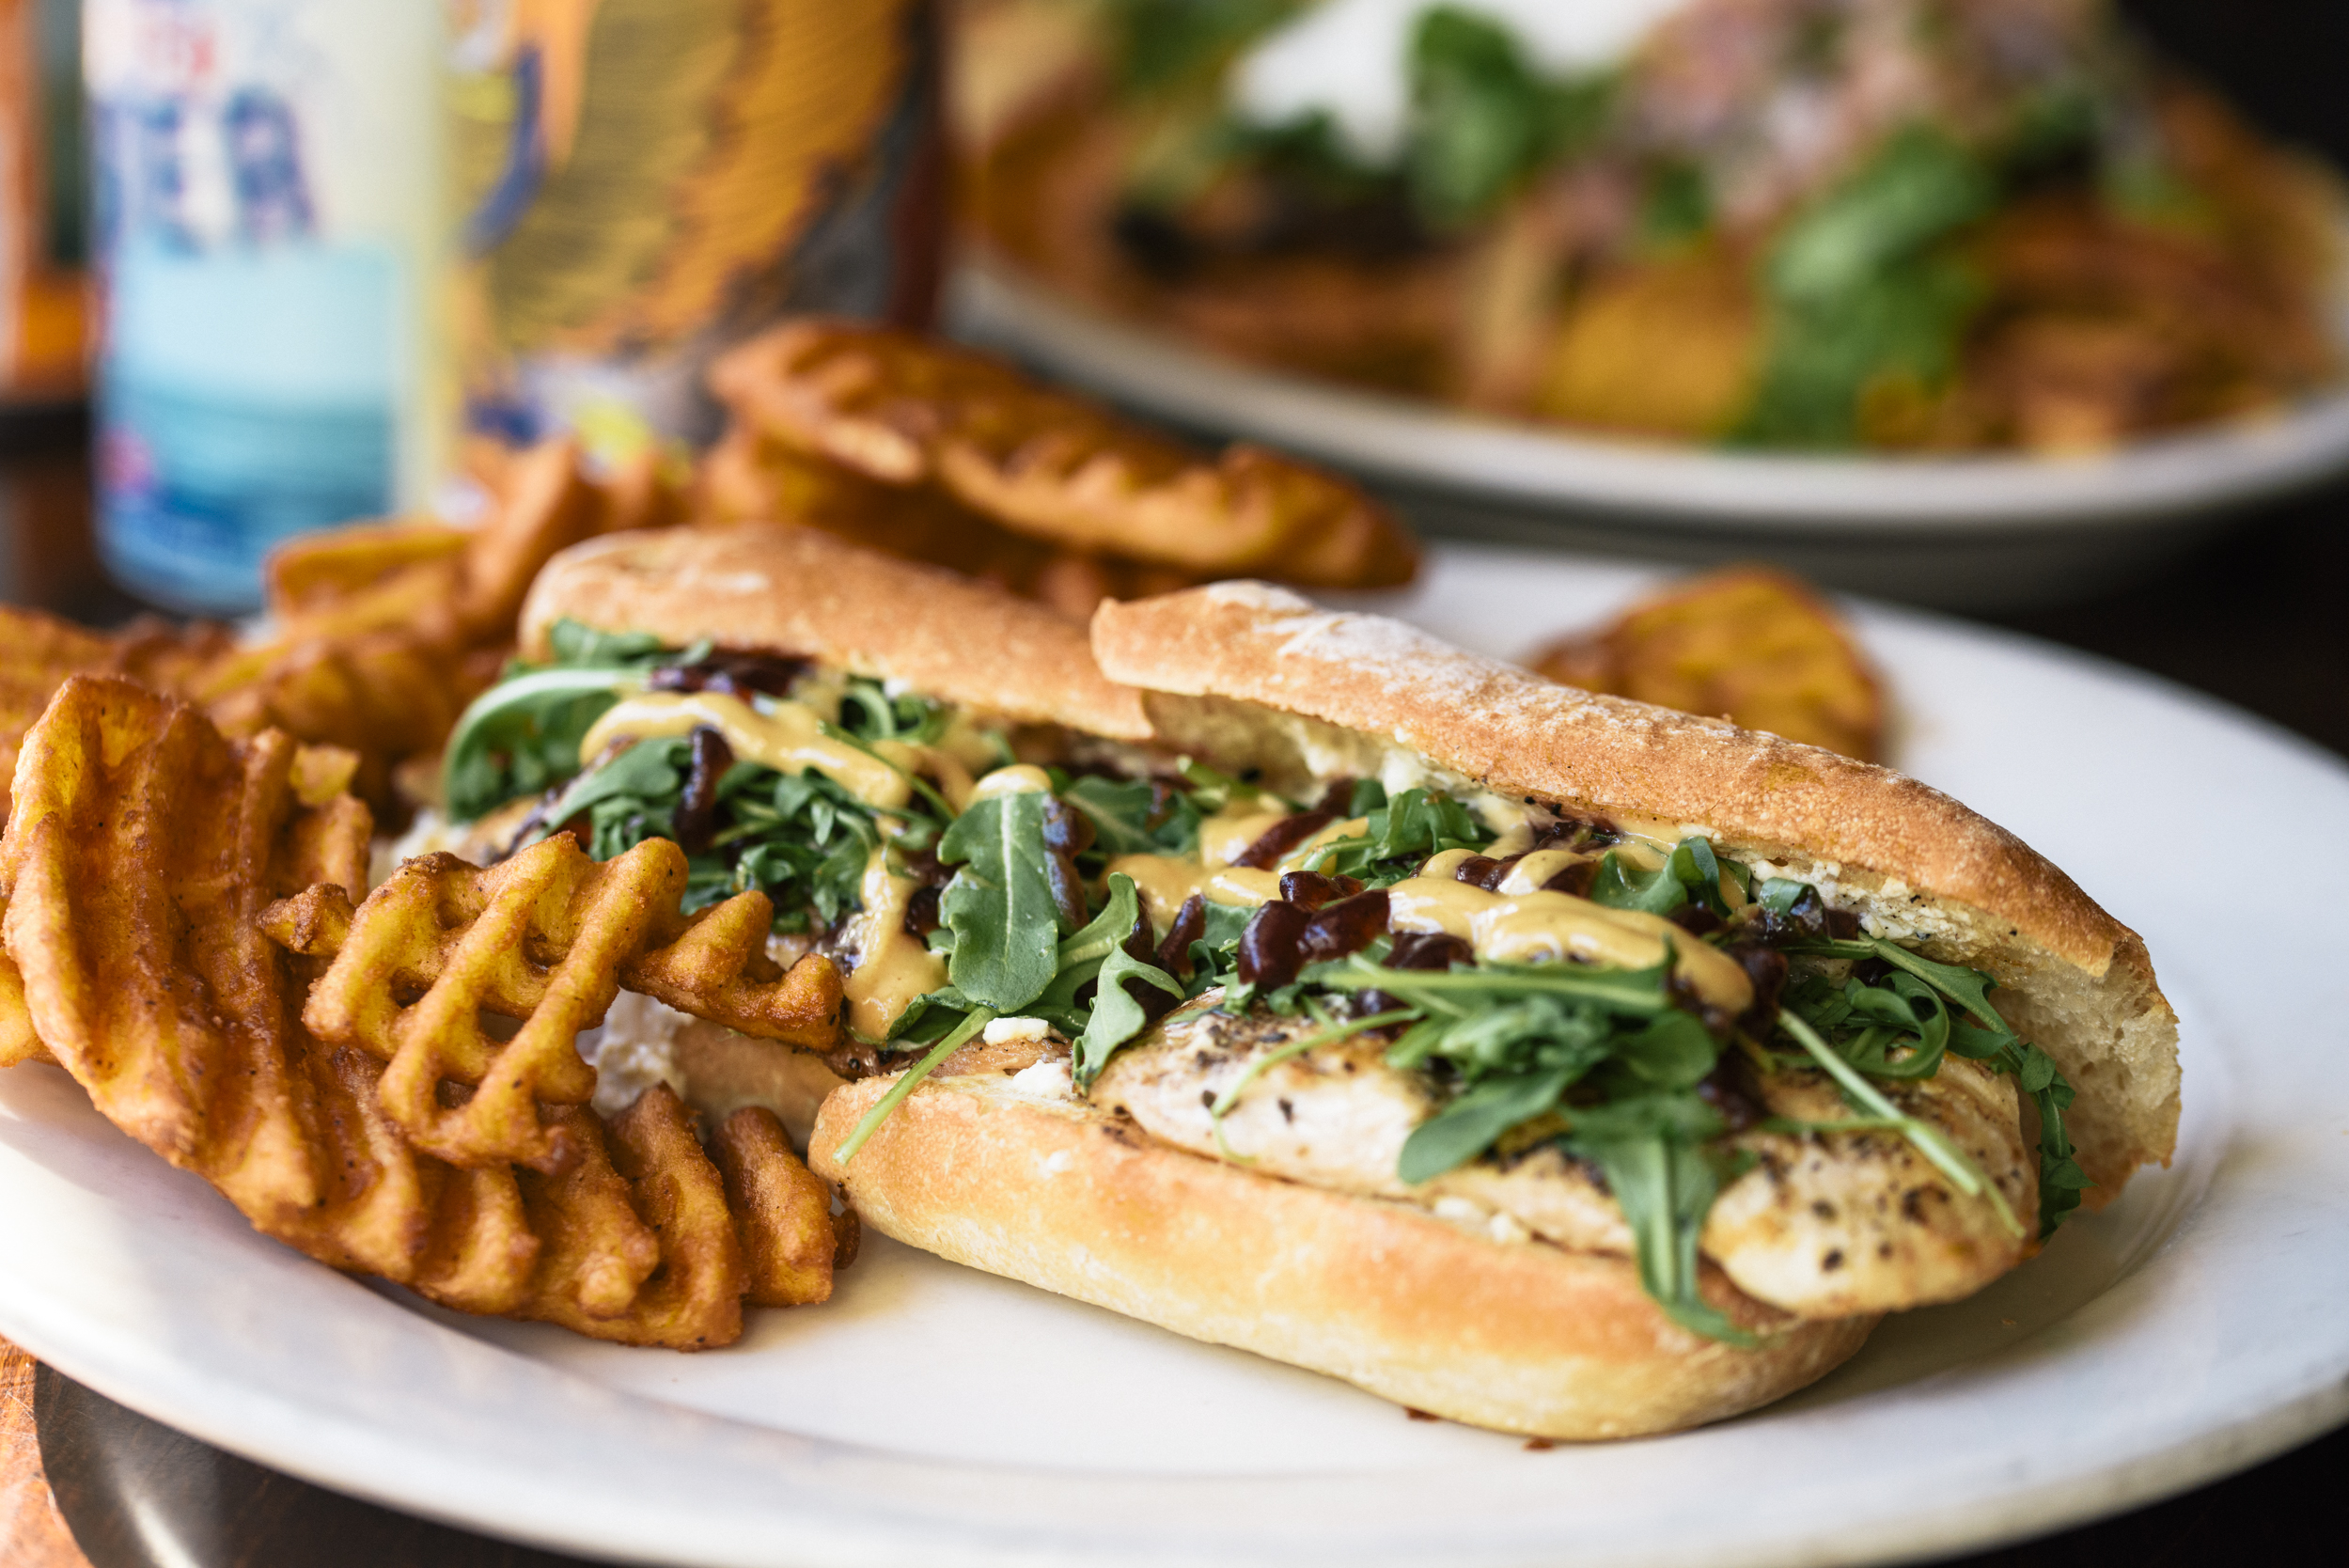 closeup-of-grilled-chicken-sandwich-waffle fries on the side